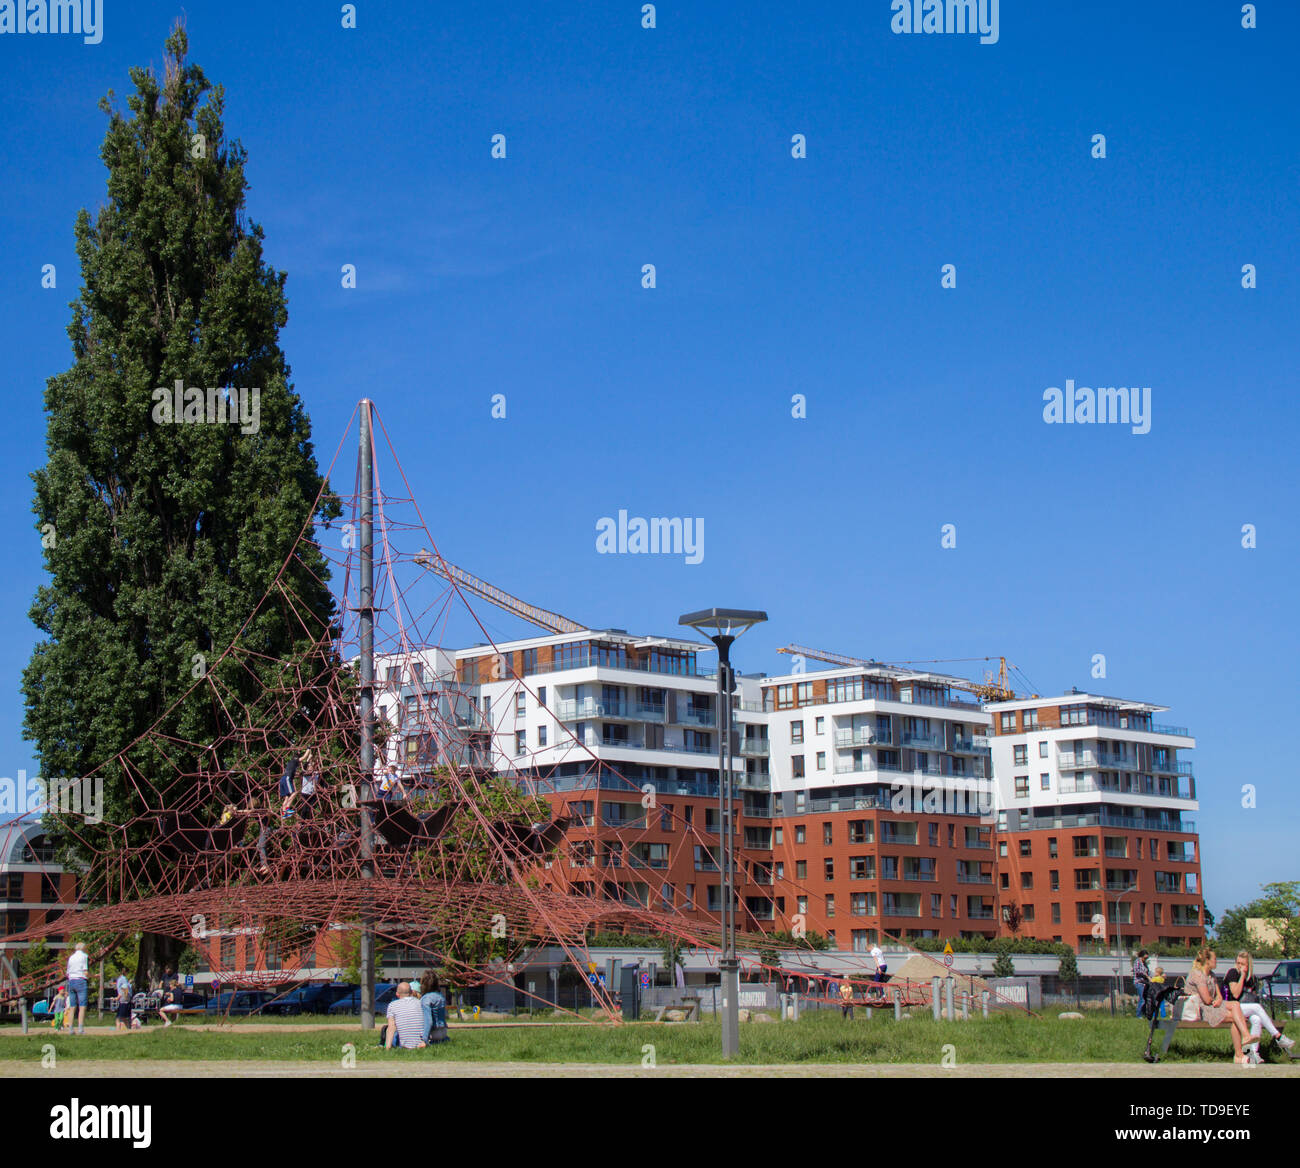 Gdansk Wrzeszcz, Poland - June 2, 2019: People relaxing on a sunny day in Garnizon with newly built houses in the background. Garnizon is a fashionabl - Stock Image